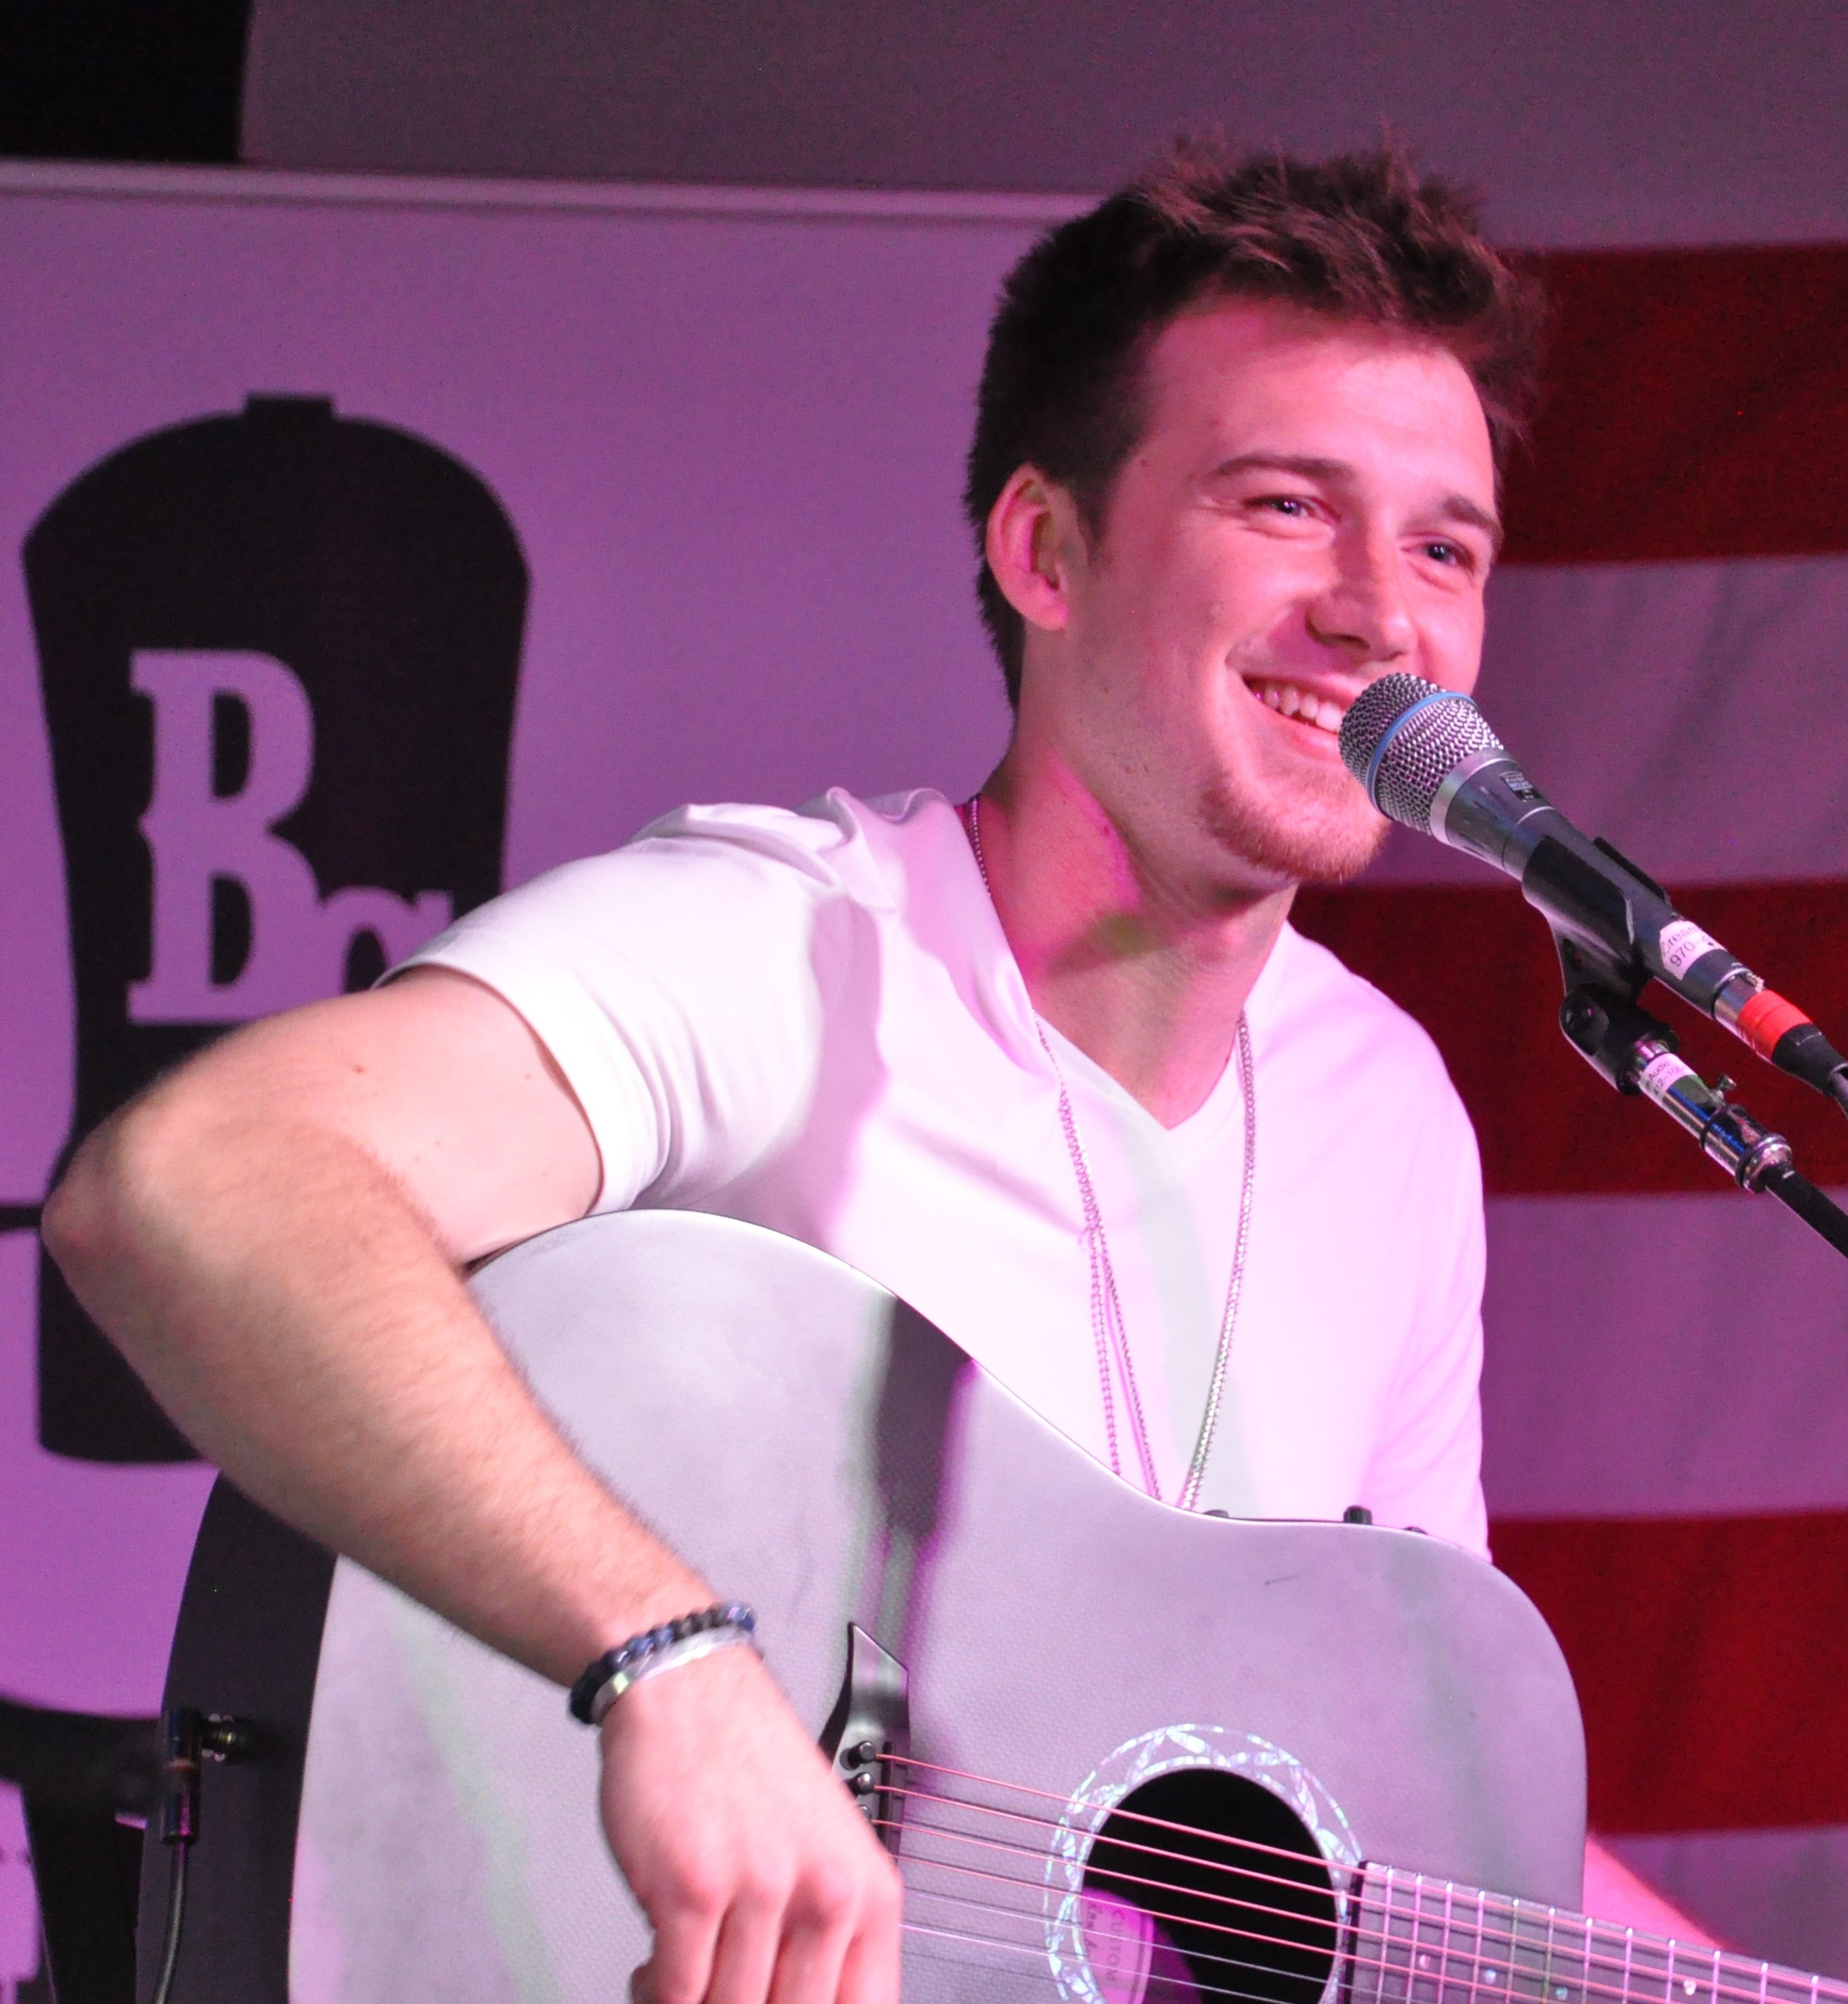 Morgan Wallen At The Boot Grill For New From Nashville Country Singers Singer Country Music